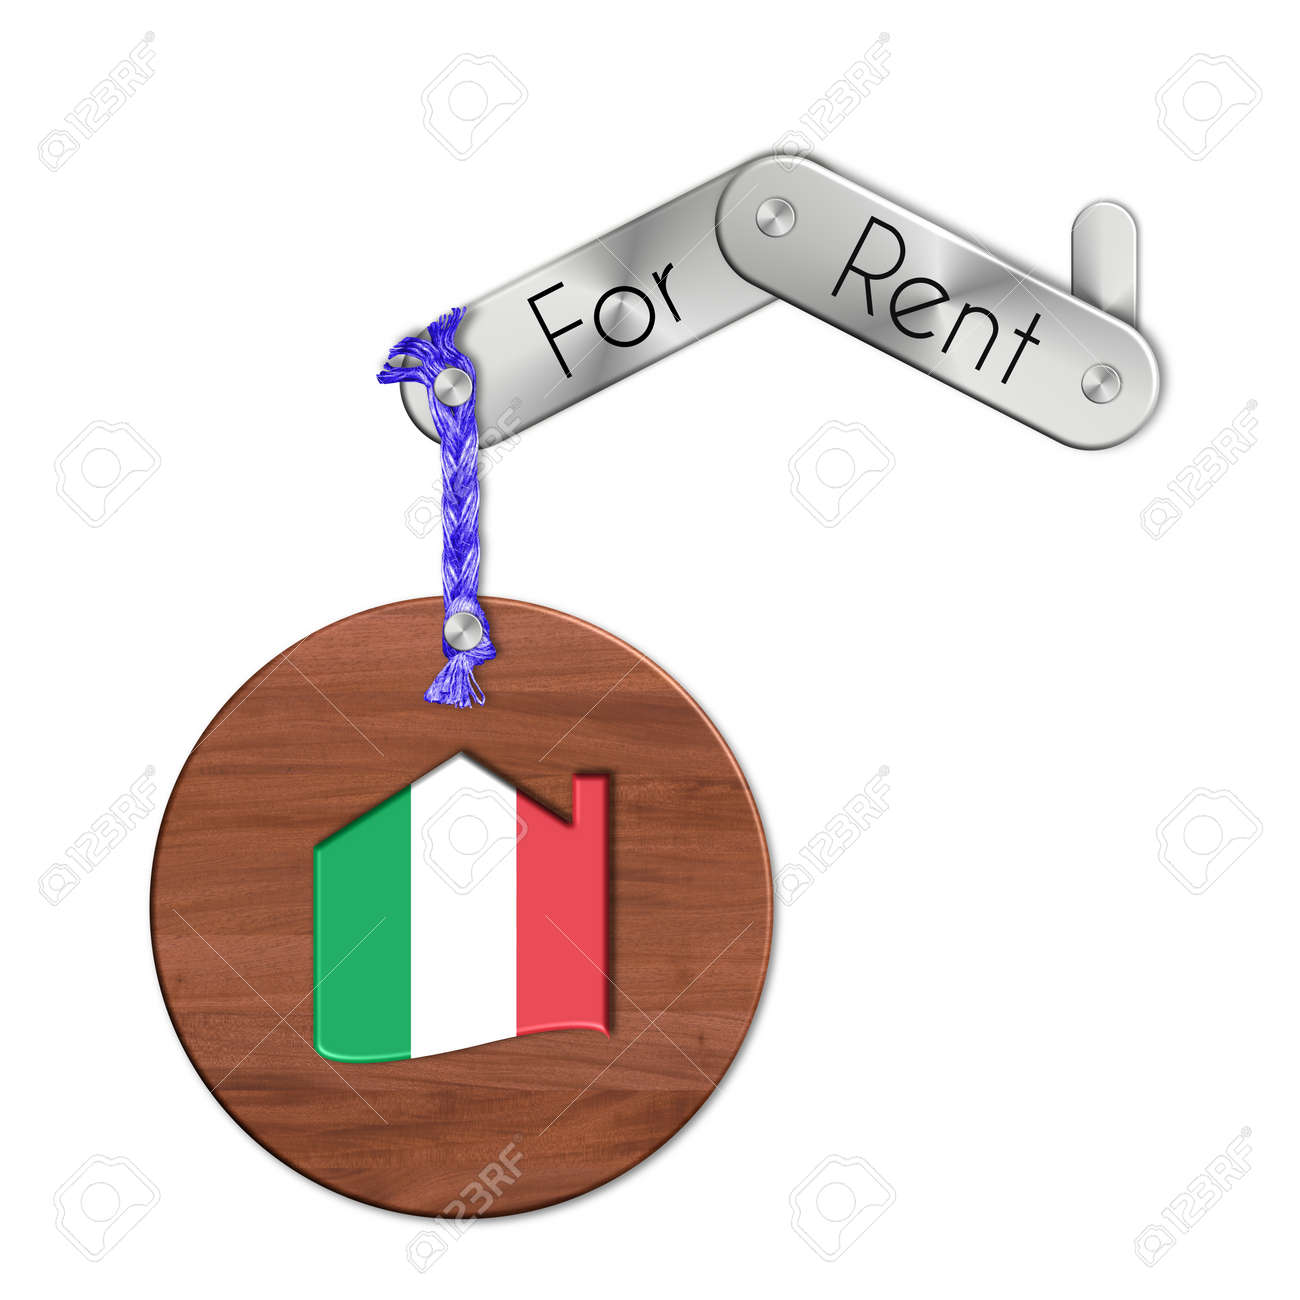 Gadget steel and wood with the nation and home symbol for rent gadget steel and wood with the nation and home symbol for rent italy stock photo biocorpaavc Choice Image